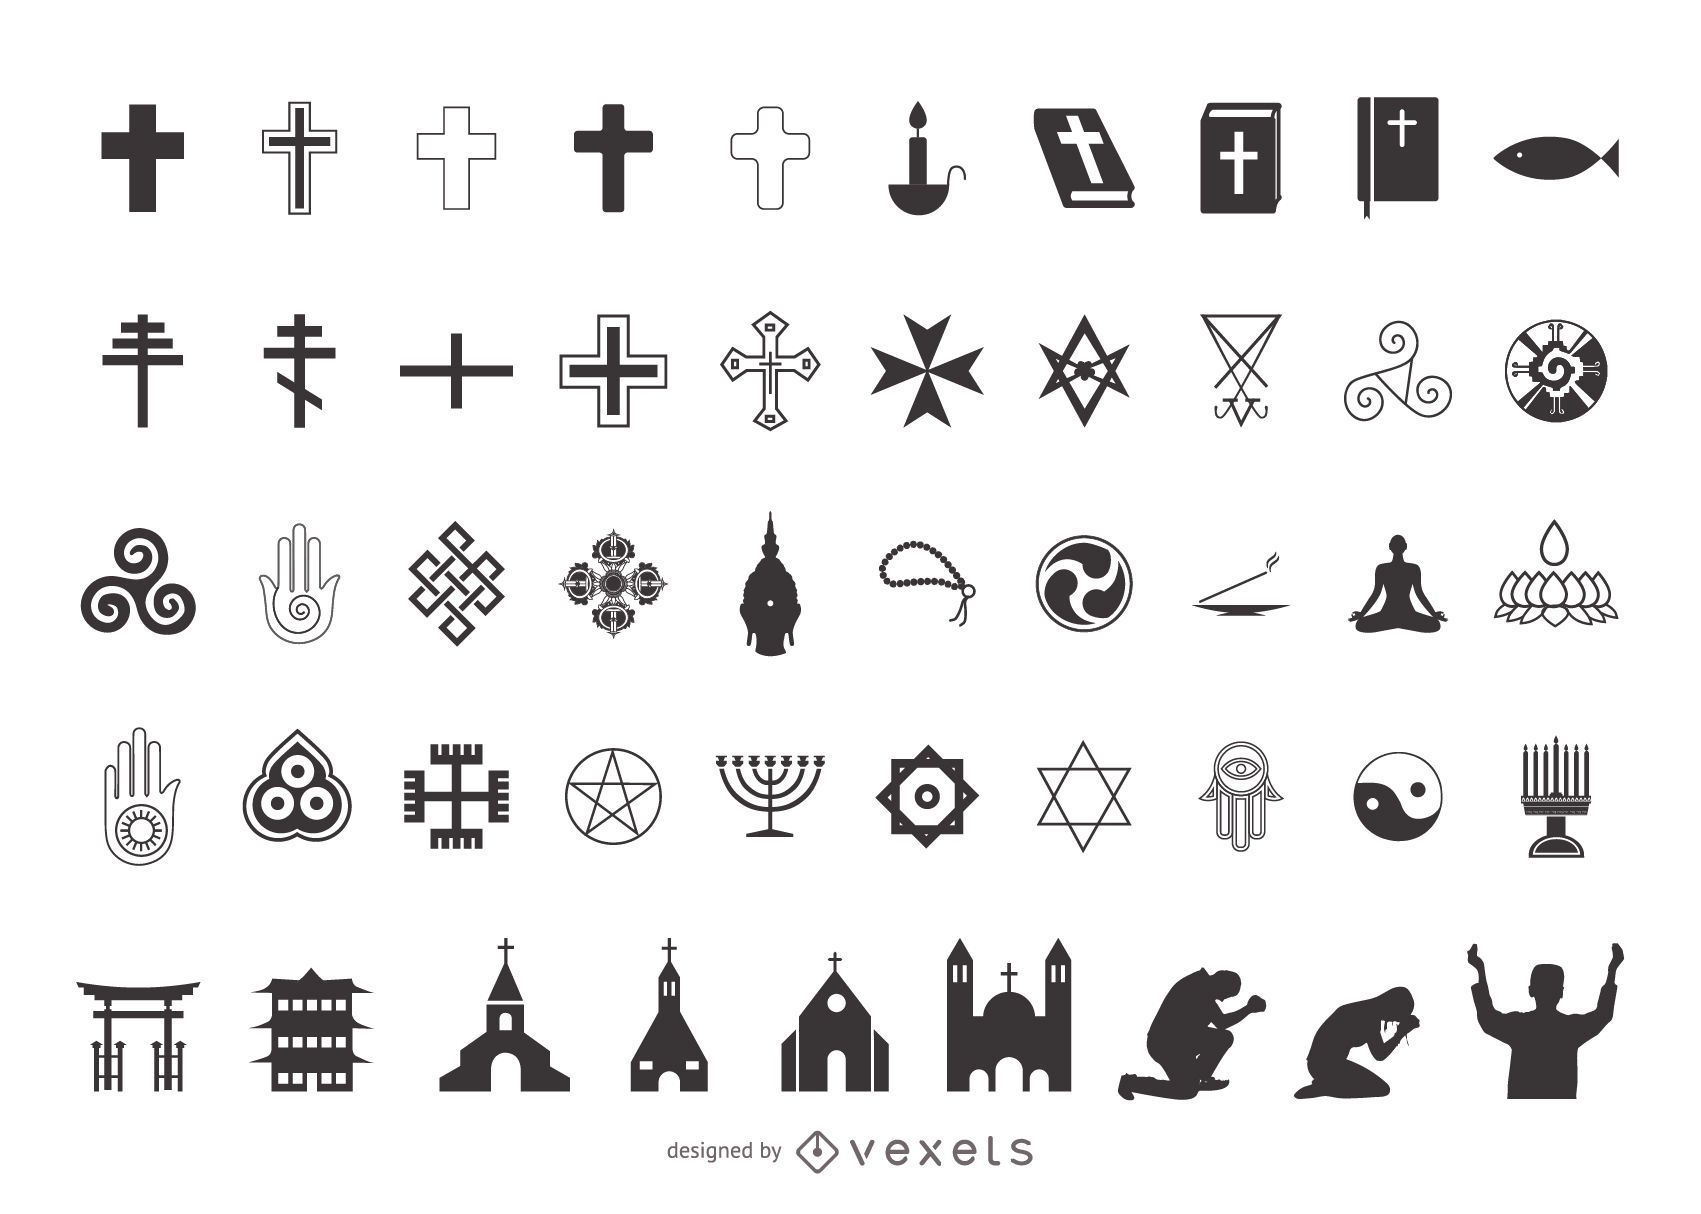 Different religious symbols and their meanings images symbol and islam religion symbols image collections symbol and sign ideas religion symbol pack silhouette vector download image buycottarizona